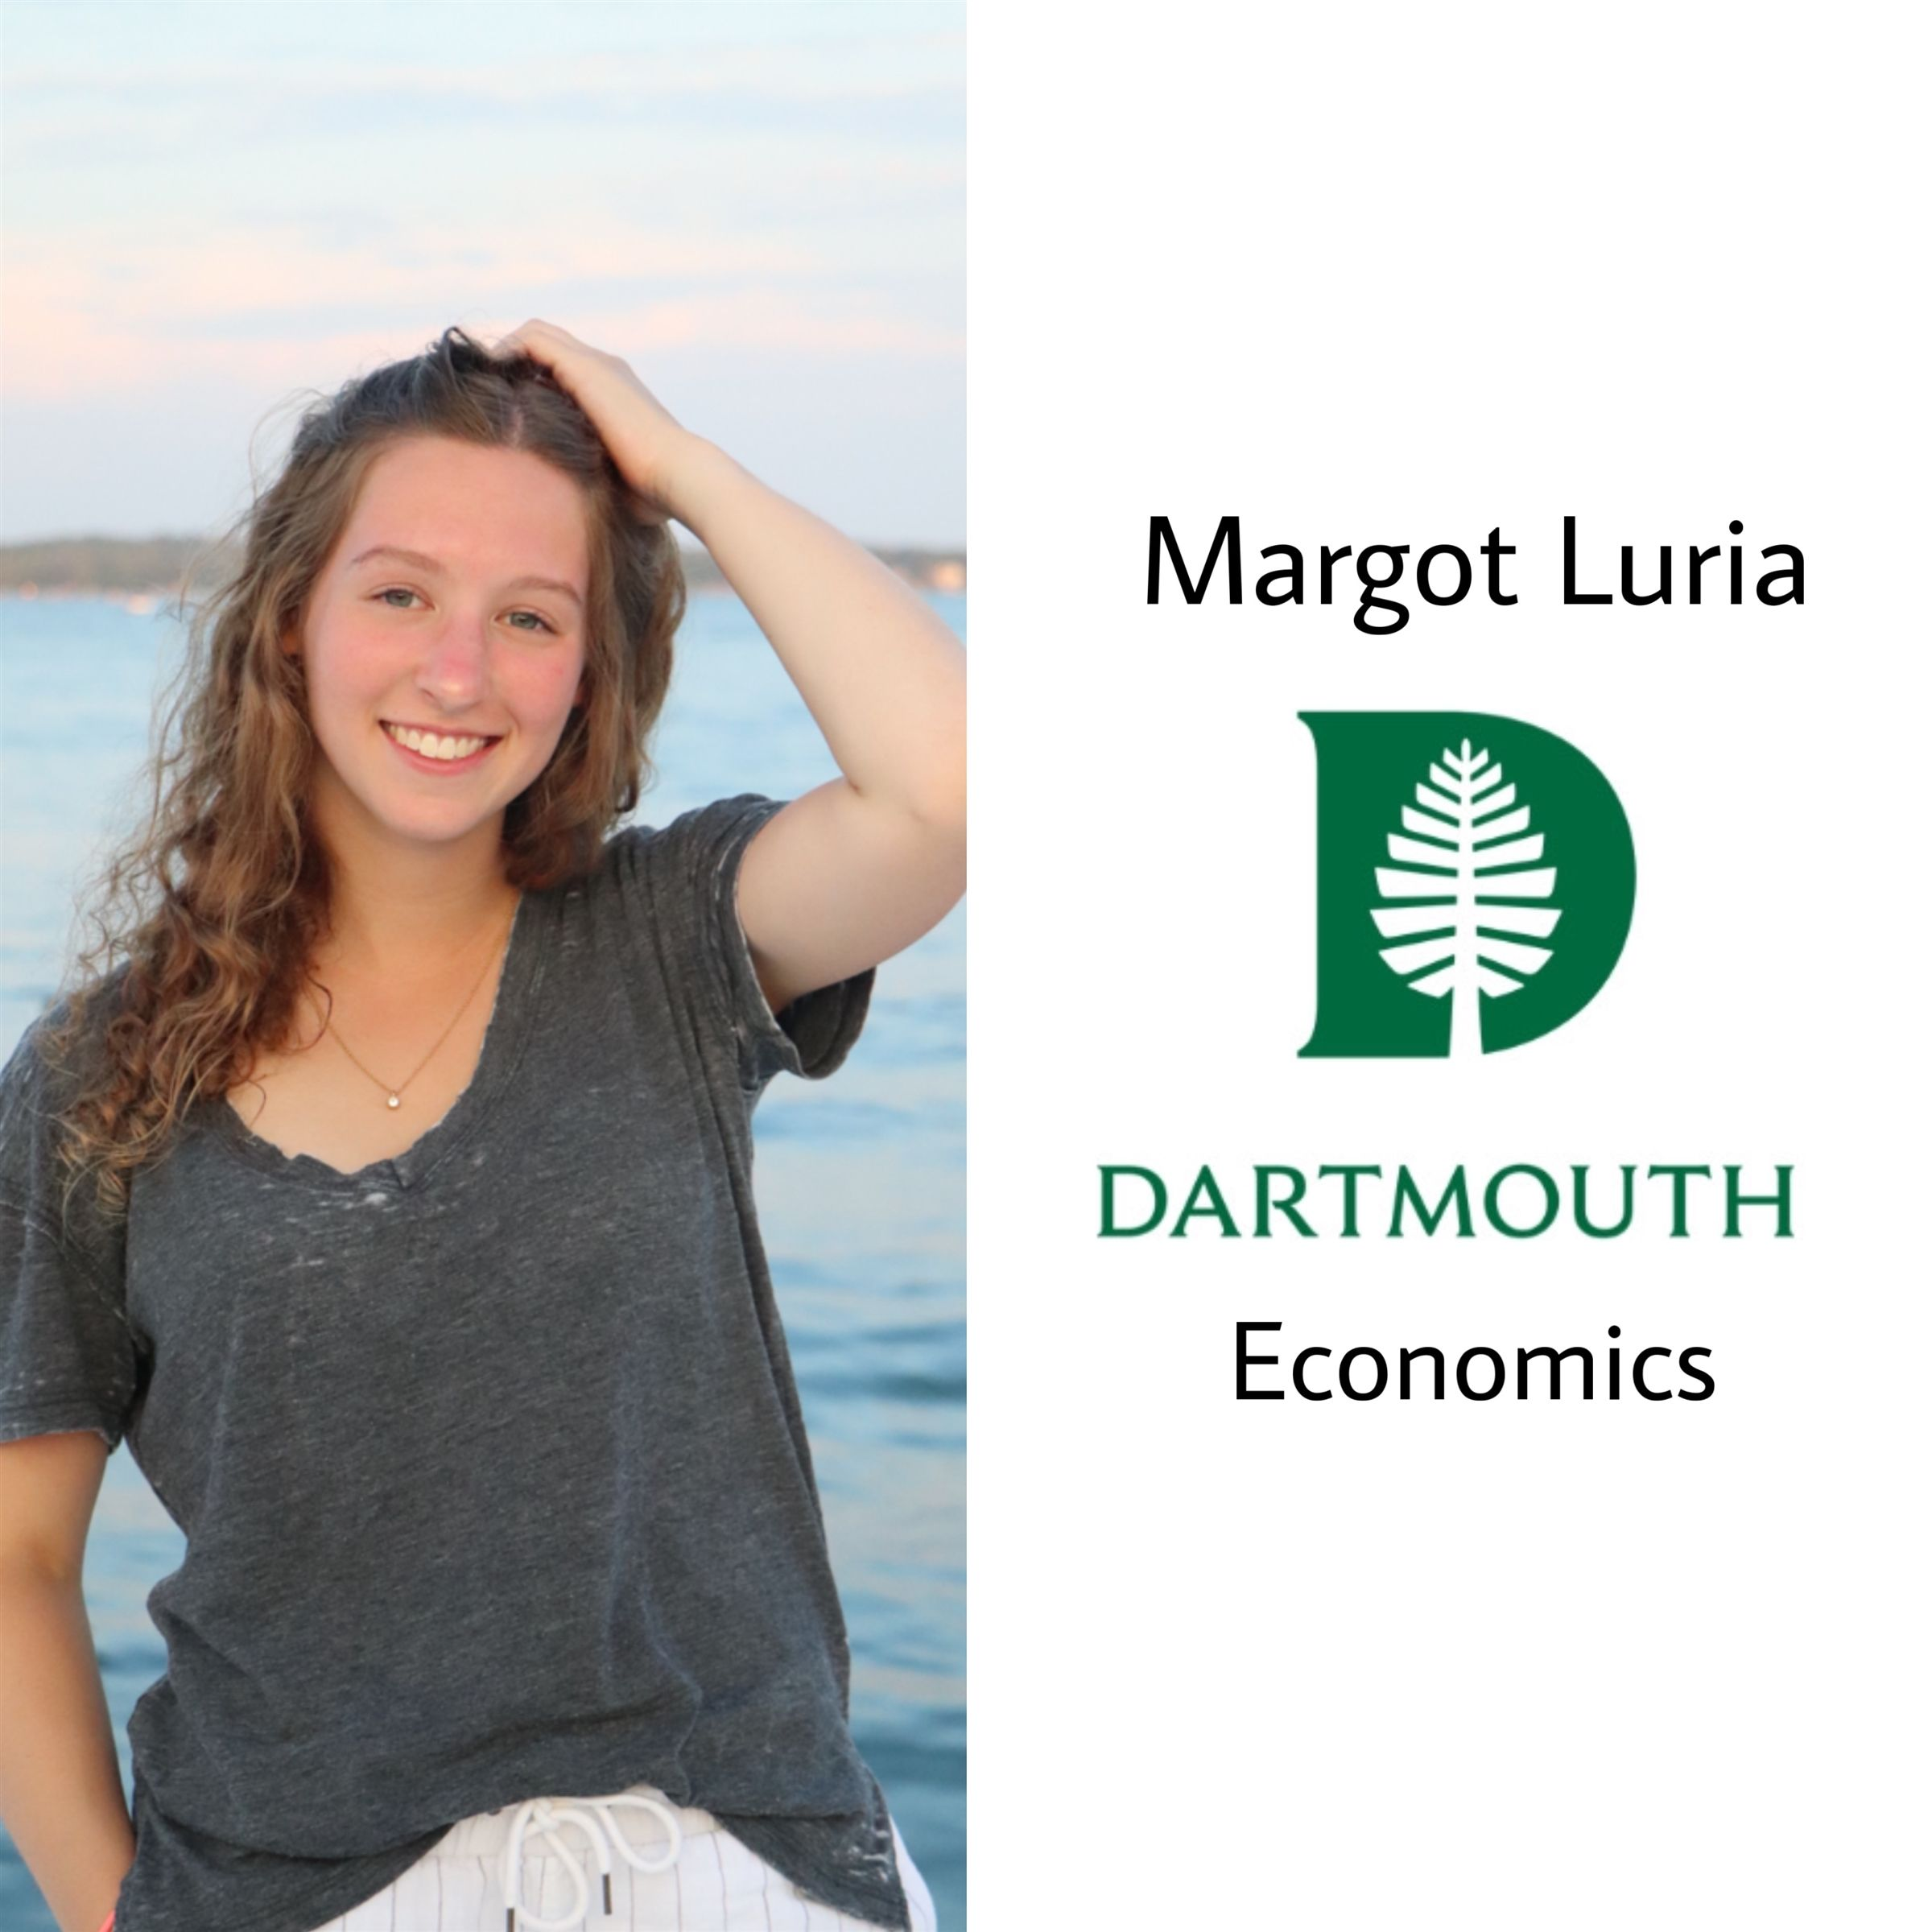 Margot will be attending Dartmouth University next year majoring in economics!! Congrats Margot :)